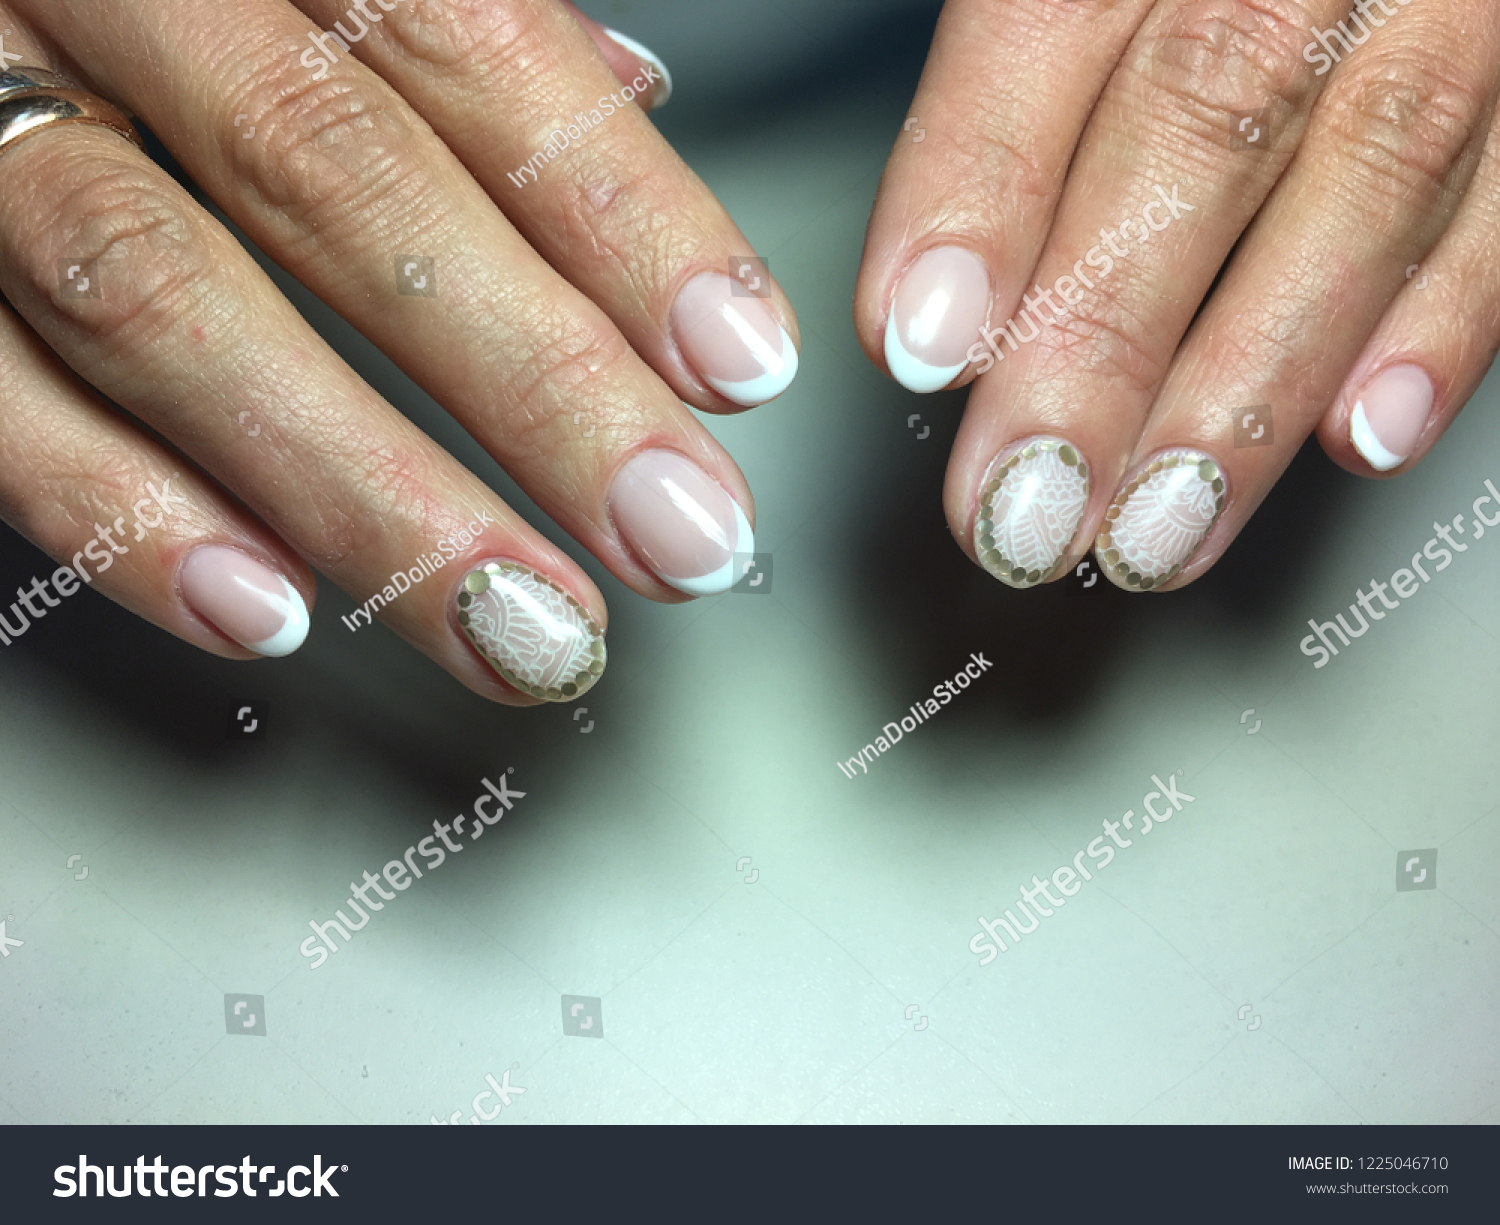 delicate french manicure on long nails with white design - Delicate French Manicure On Long Nails Stock Photo (Edit Now